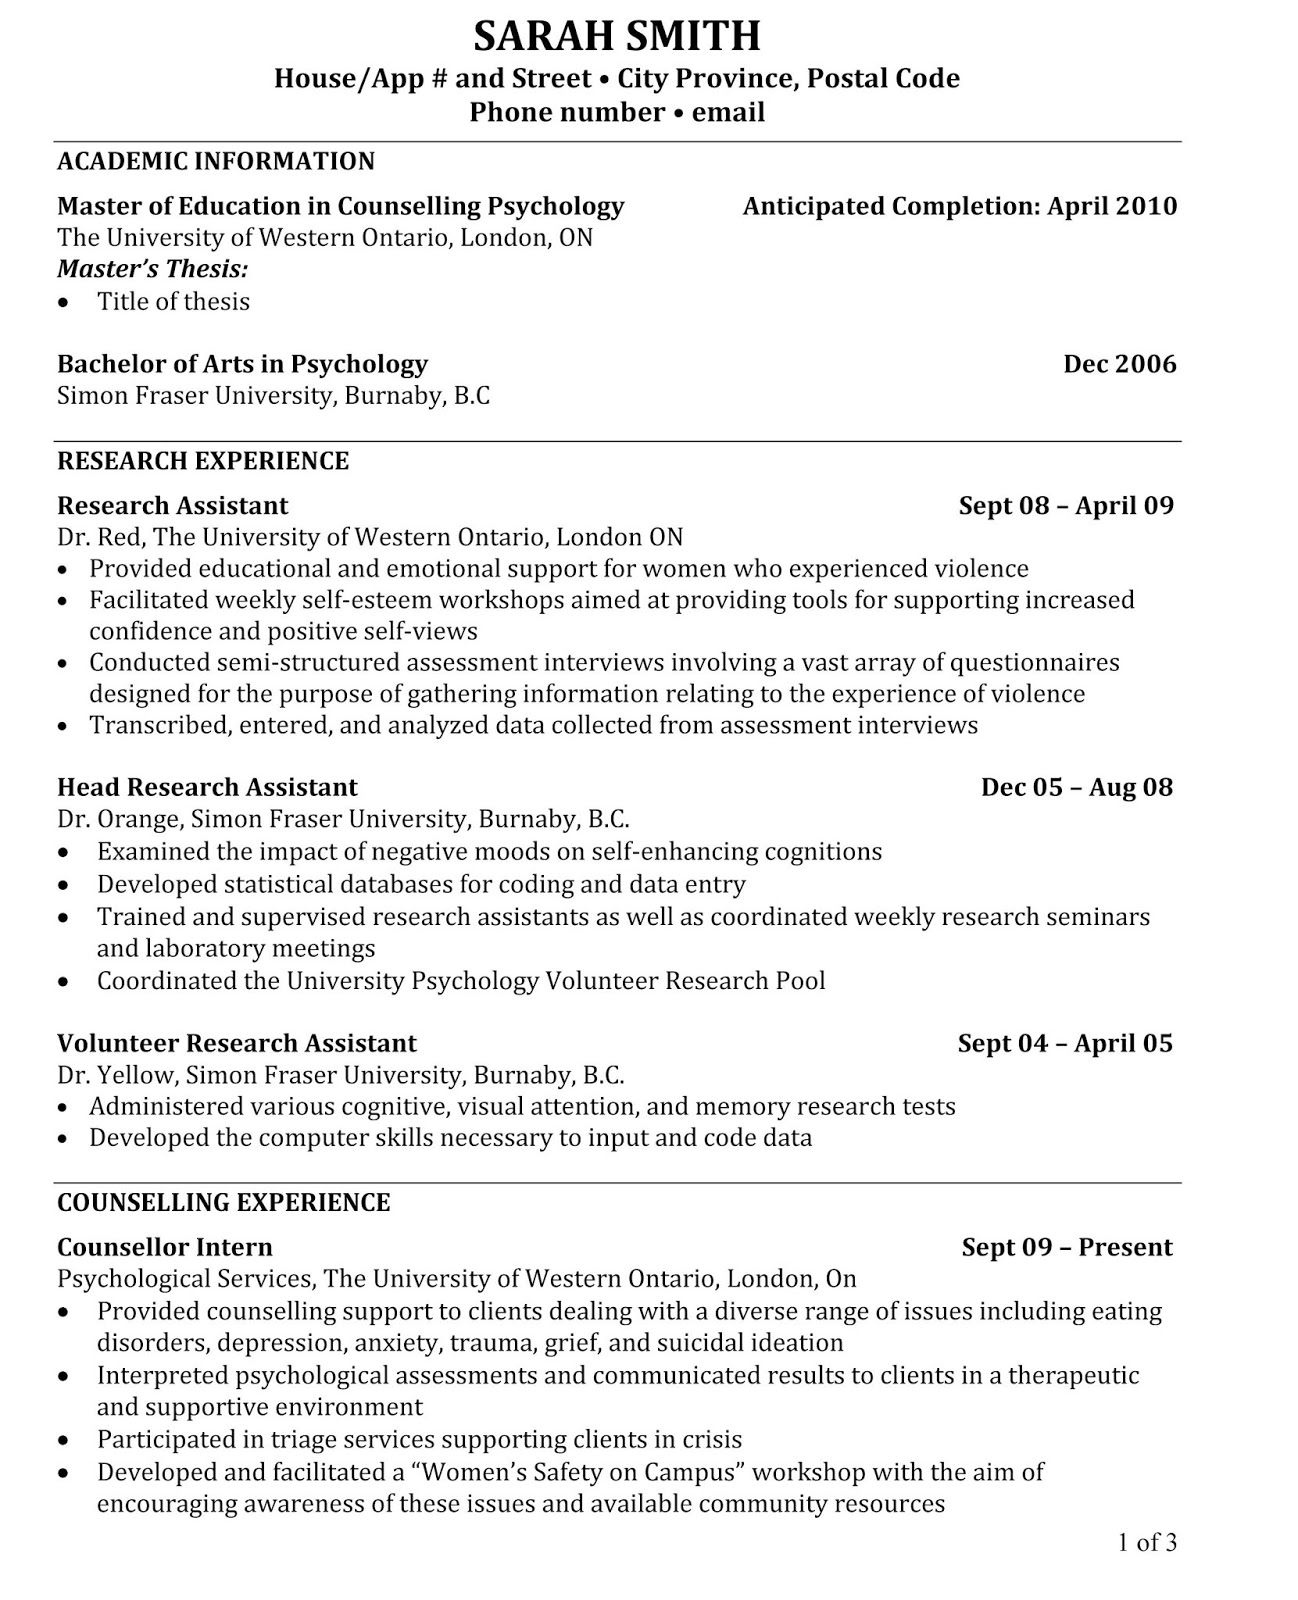 Academic Resume Sample Academic Resume Sample Pdf Academic Resume Sample 2019 Academic Resume Sample For Academic Cv Student Resume Template Resume Examples